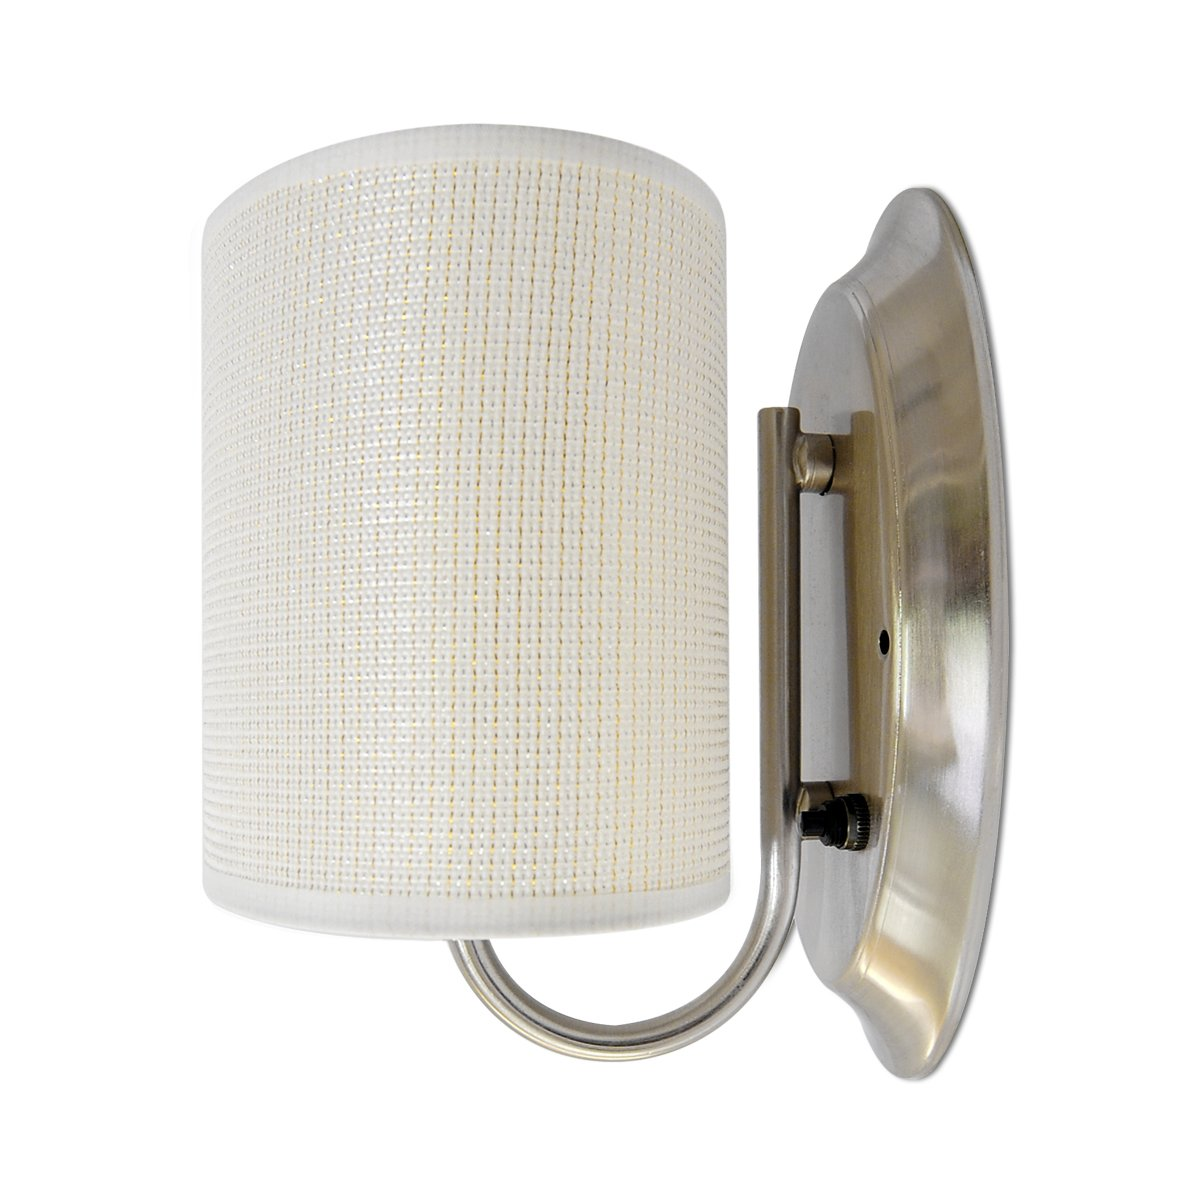 Dream Lighting New Version 12v Fabric Light Fixture With Flared Wall Sconce Shade Mount Led